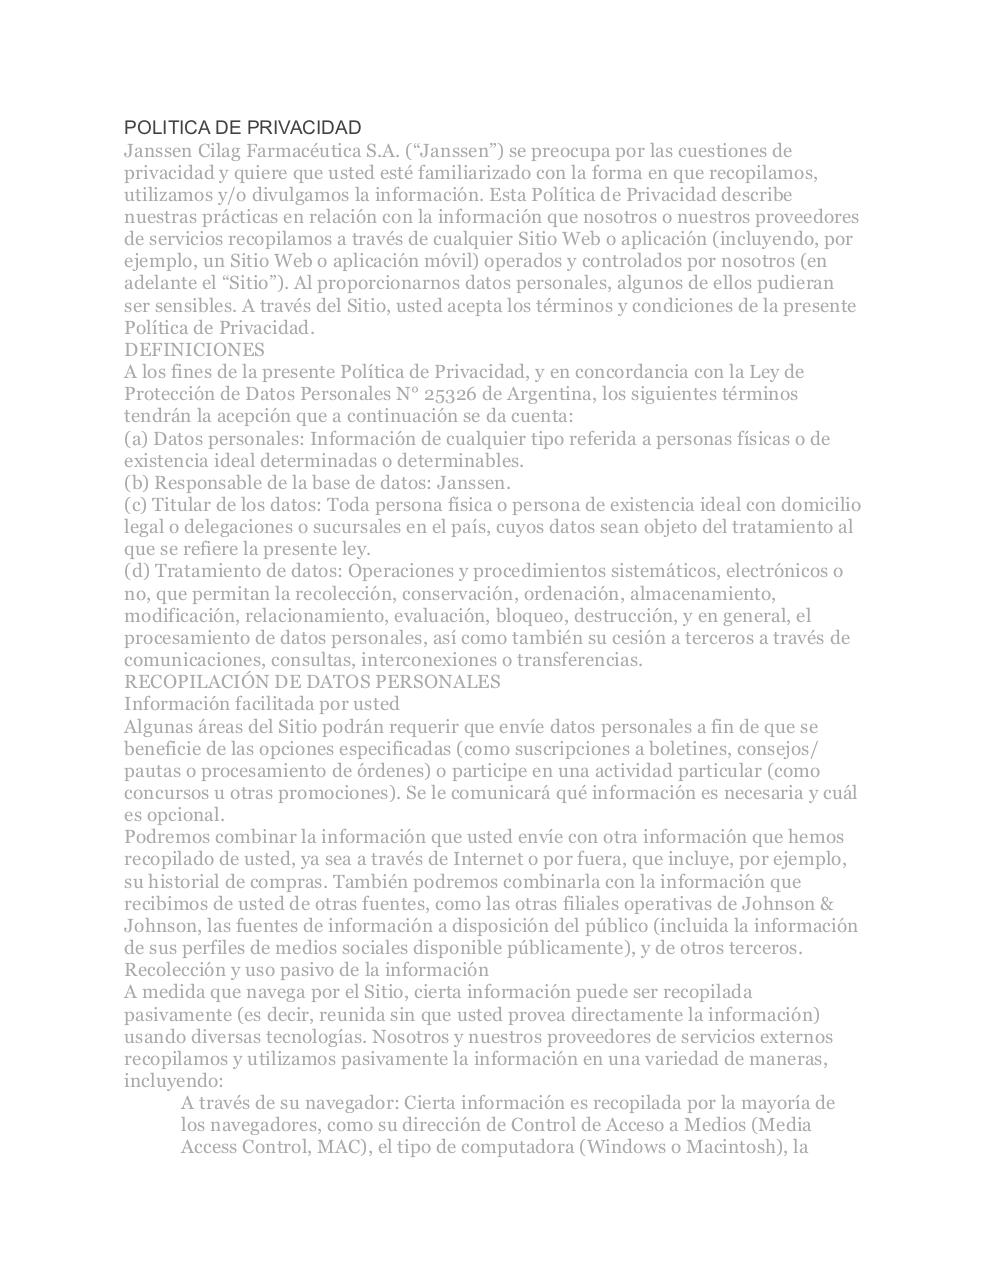 PrivacyPolicyARG.pdf - page 1/7